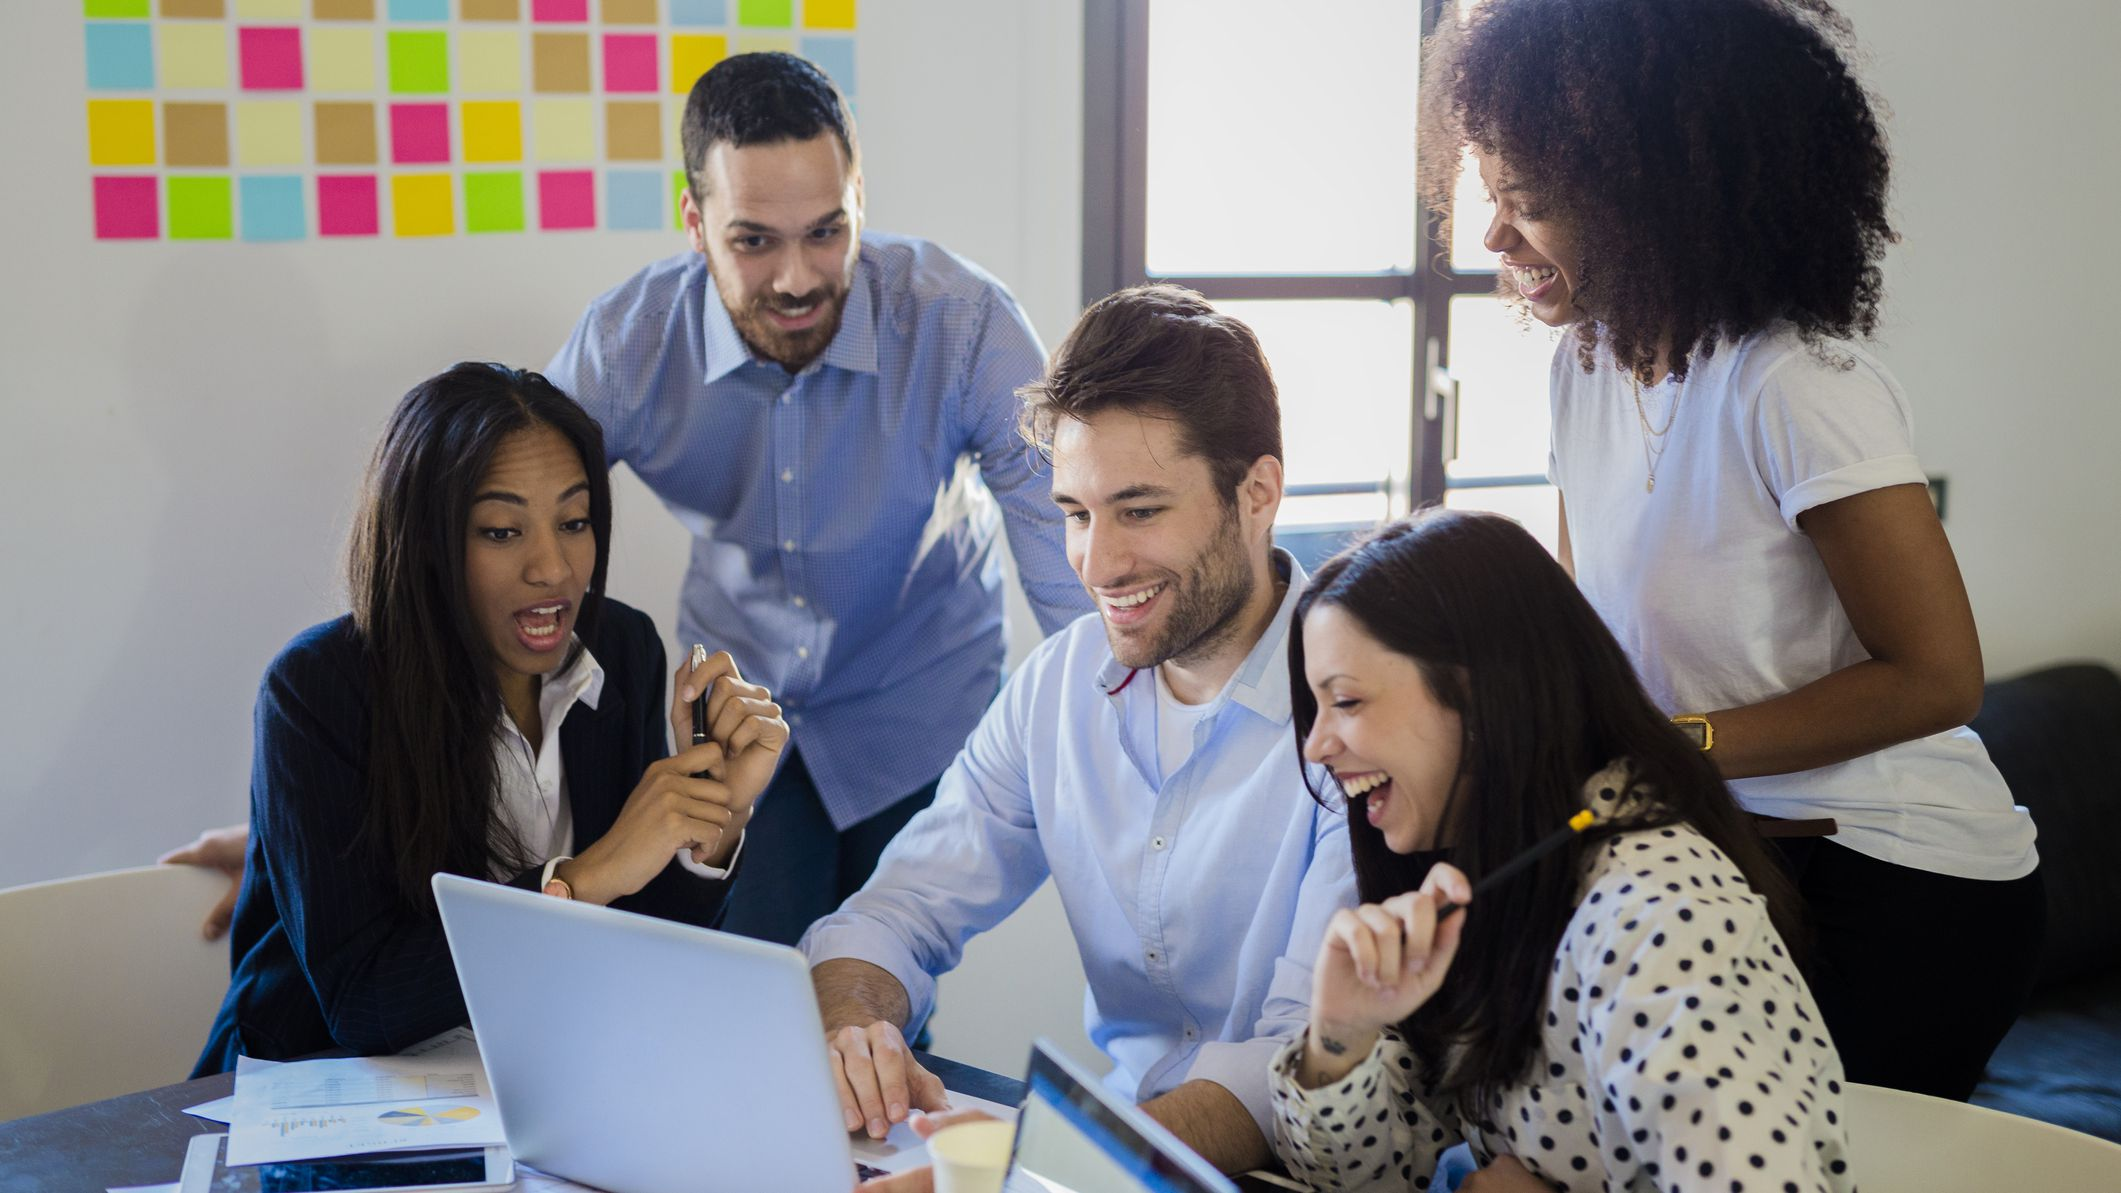 Can't get your team to follow your lead? Try this